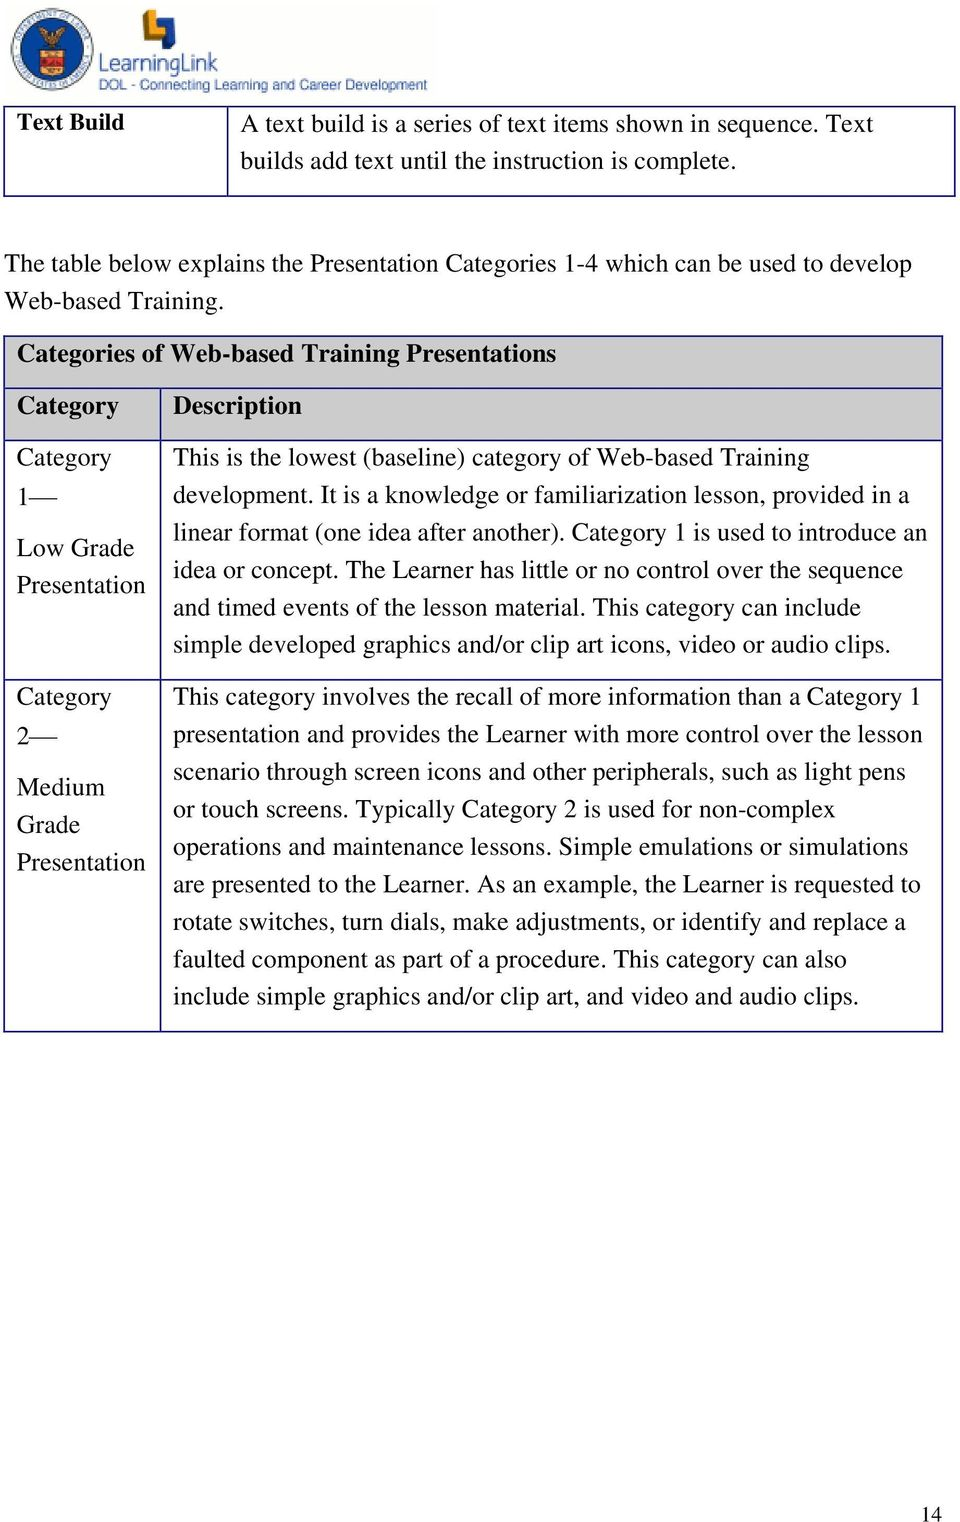 Categories of Web-based Training Presentations Category Category 1 Low Grade Presentation Category 2 Medium Grade Presentation Description This is the lowest (baseline) category of Web-based Training